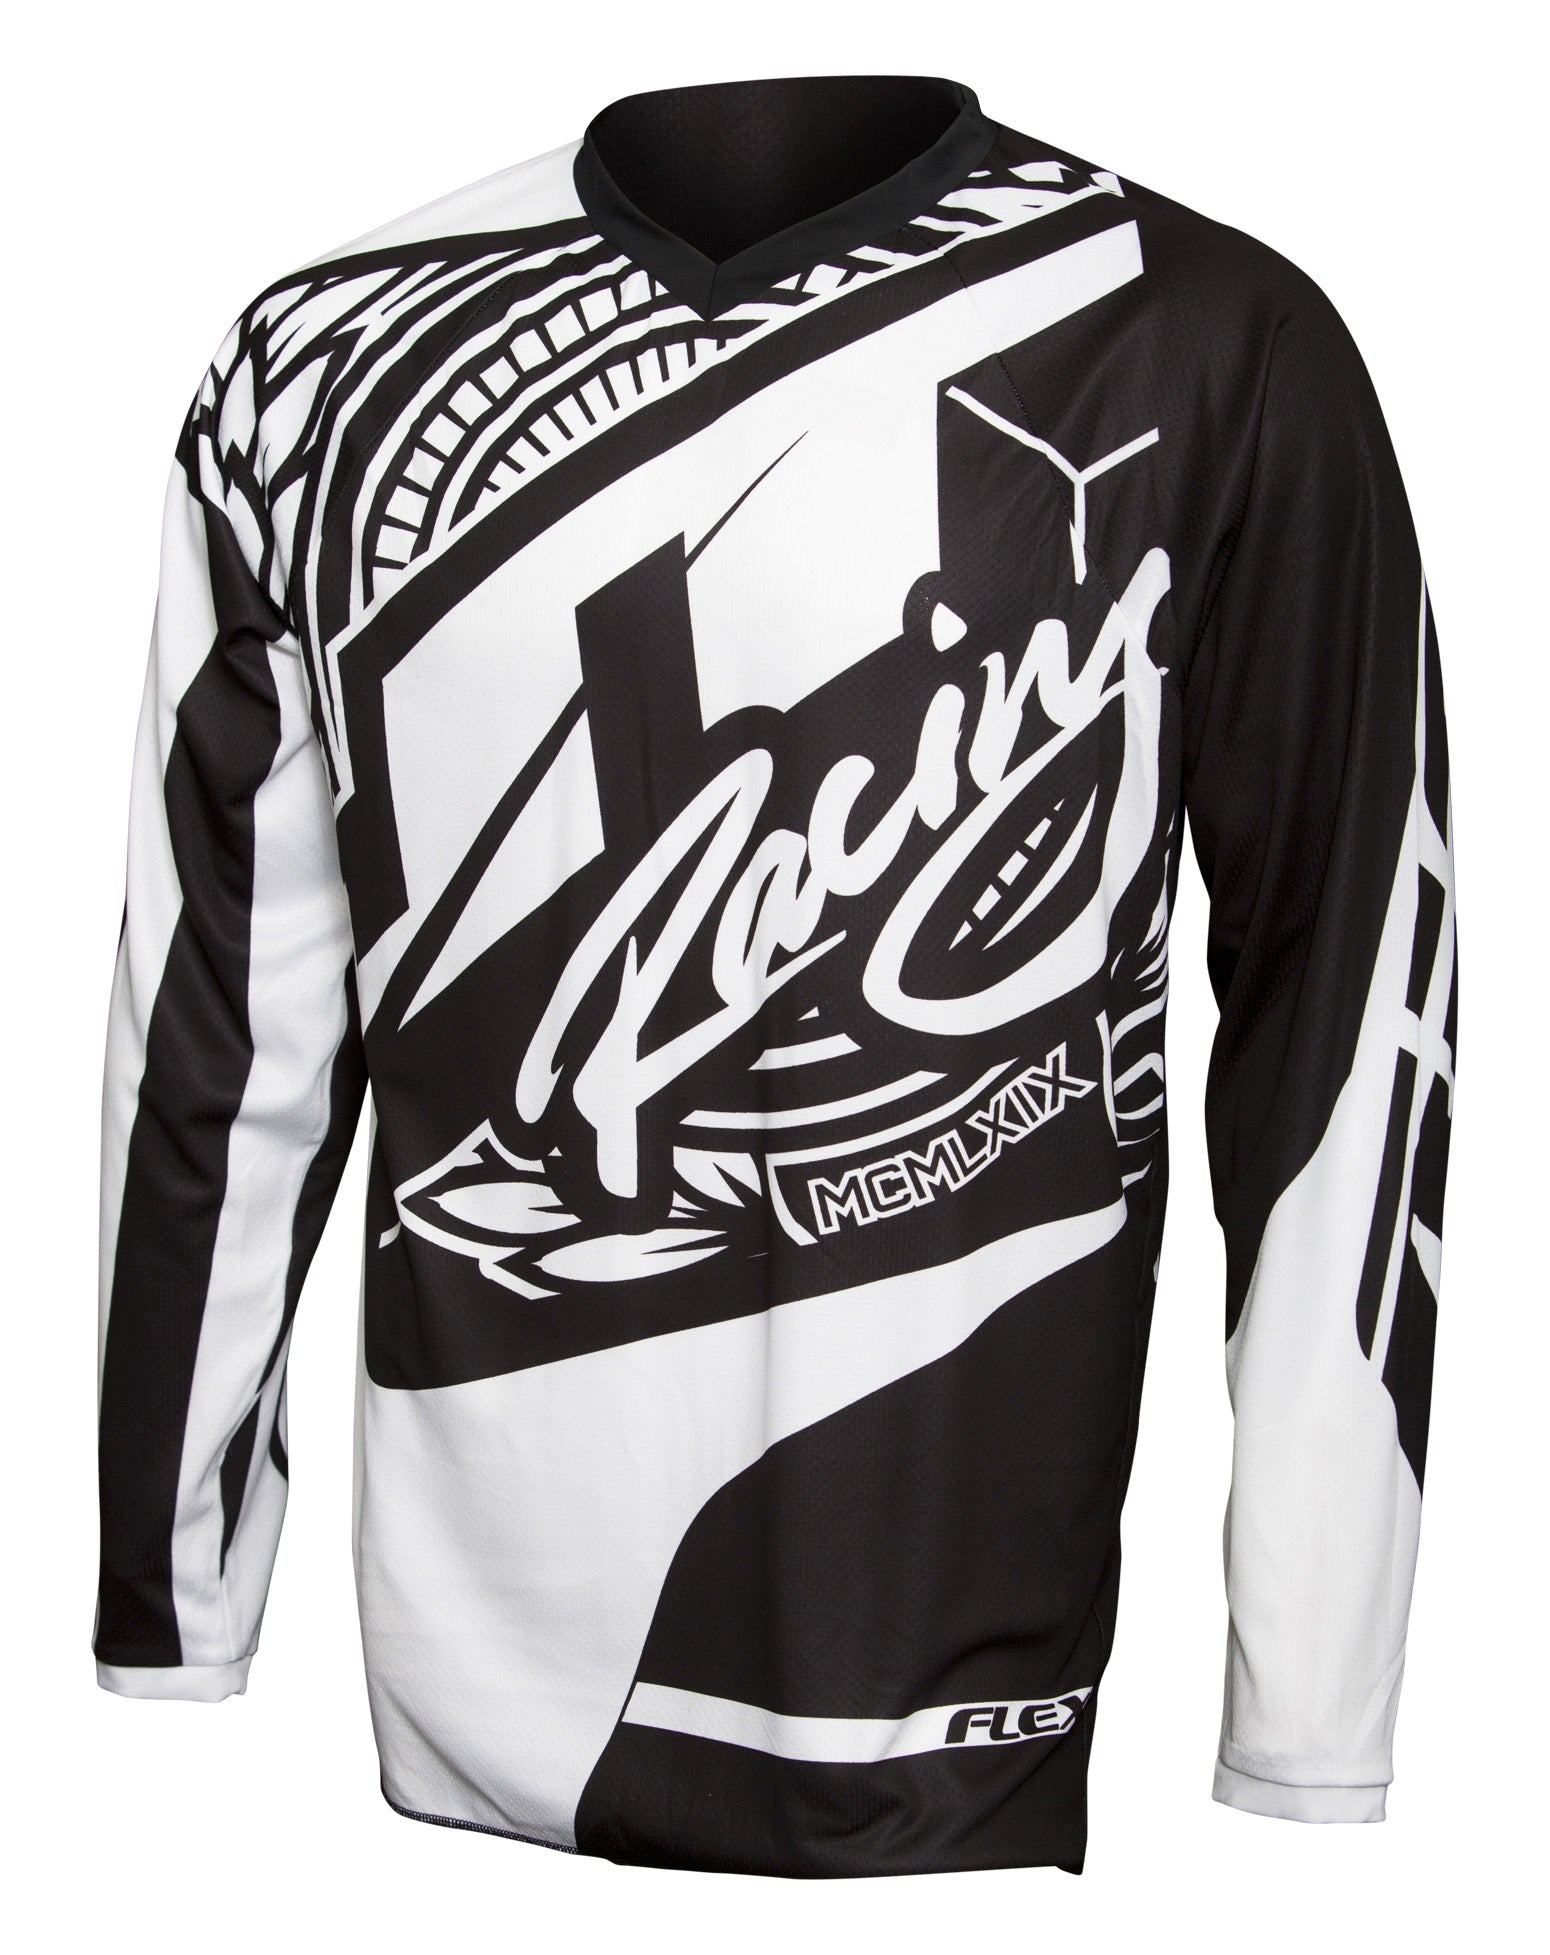 JT RACING USA Flex-Victory Jersey, Black/White